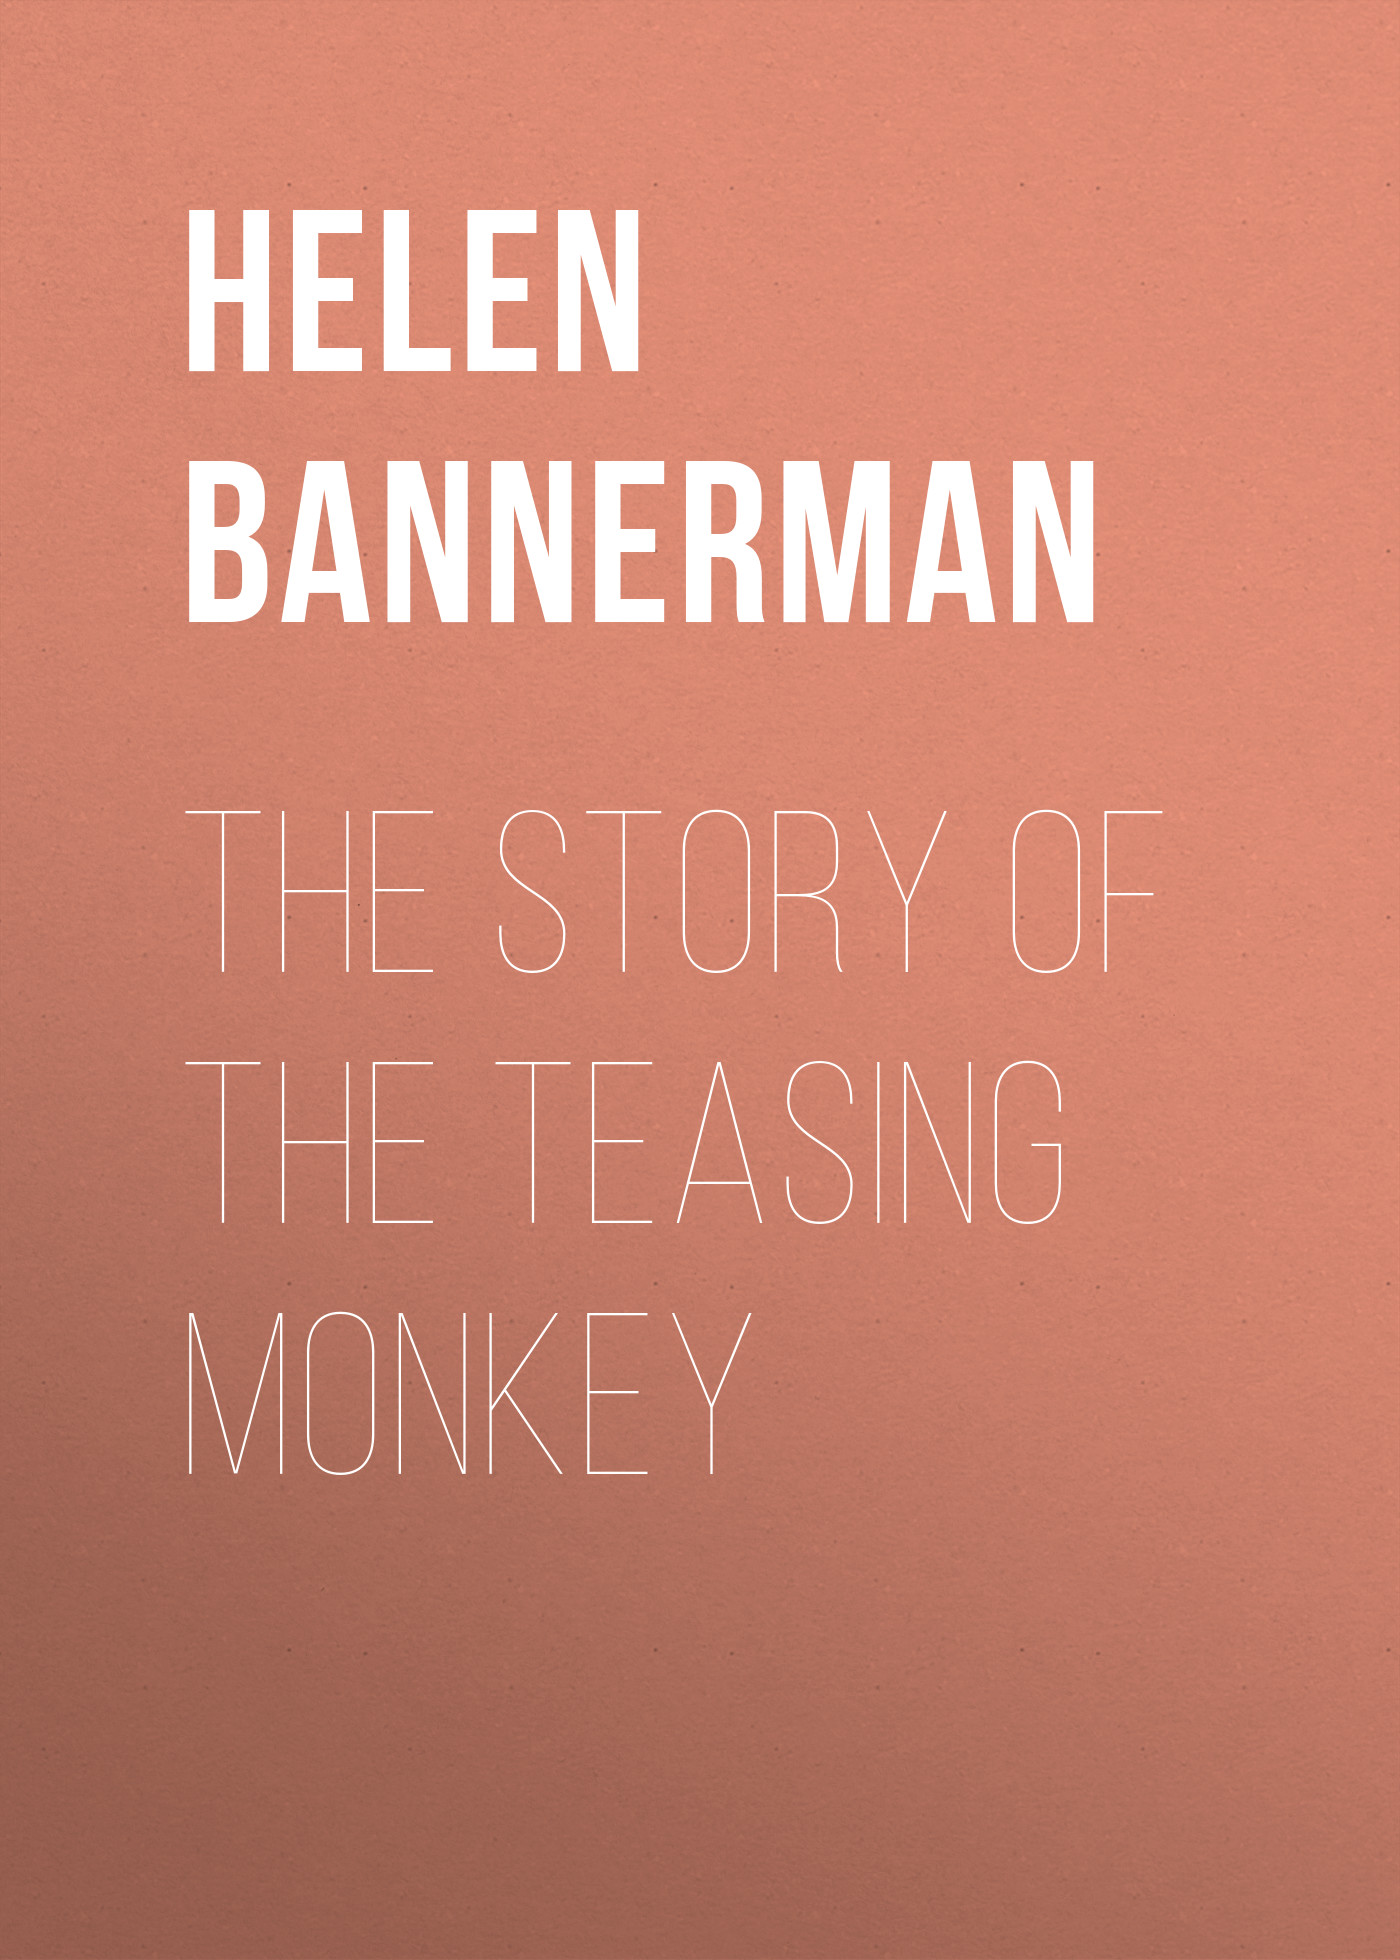 Bannerman Helen The Story of the Teasing Monkey полка для ванной primanova 63 21 21 см голубой